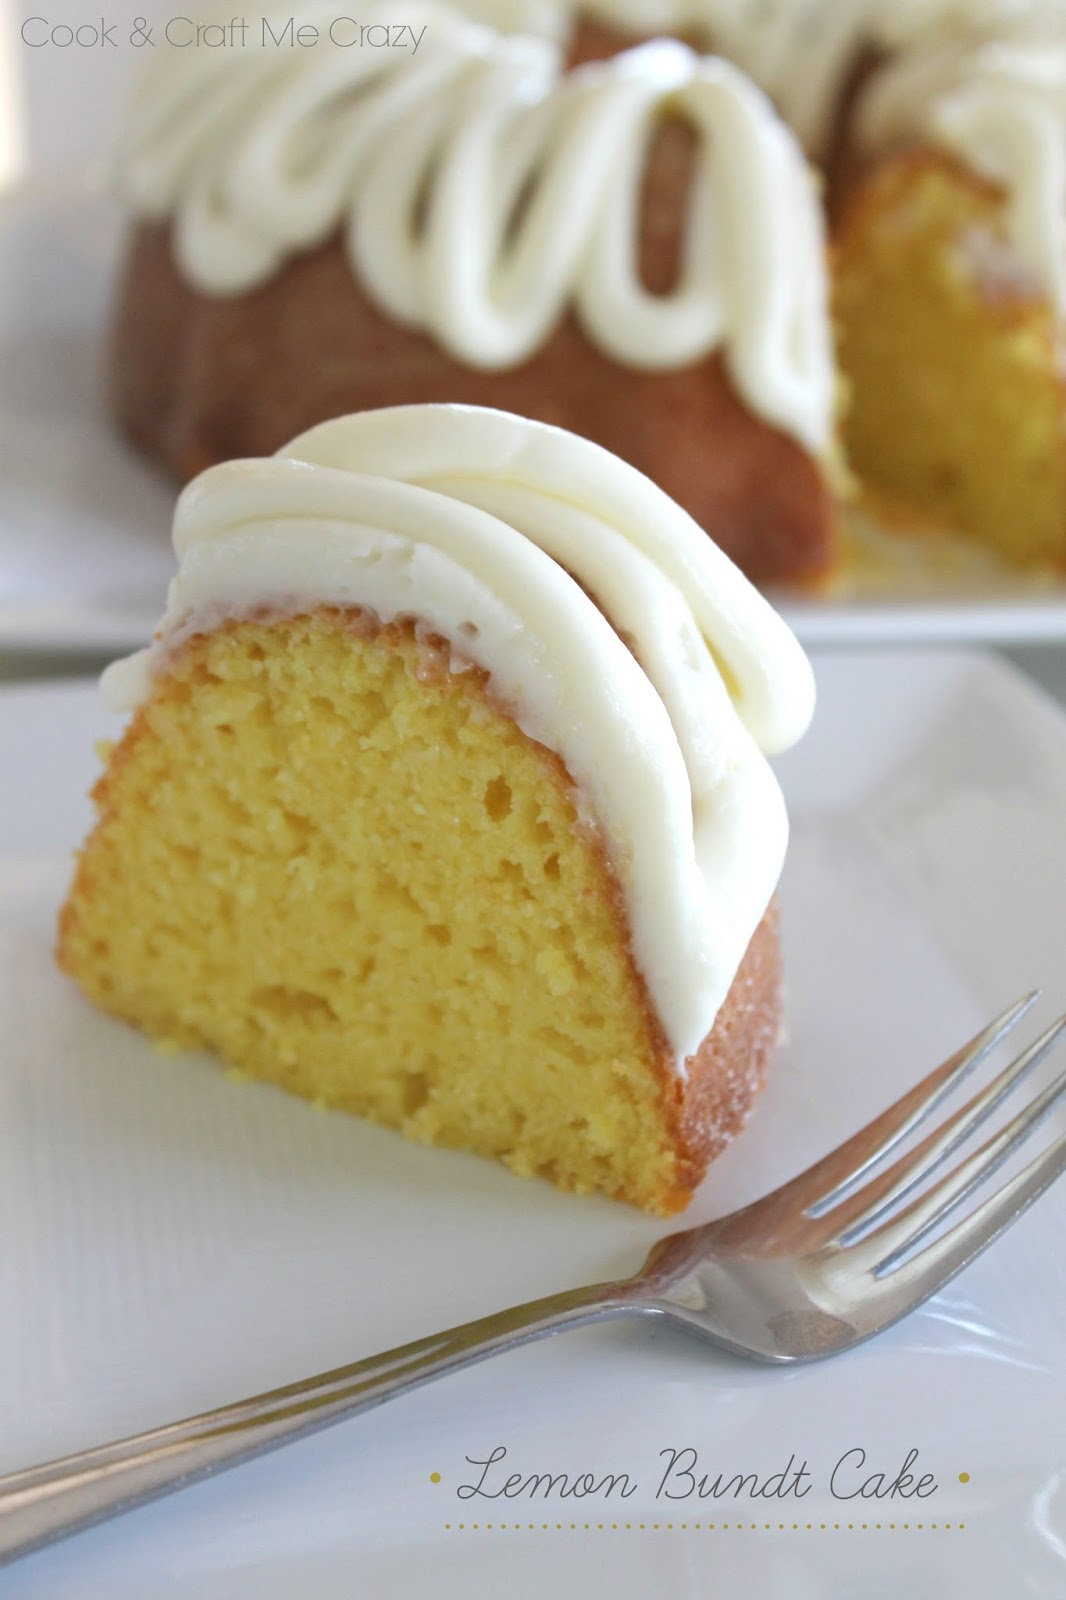 Lemon Bundt Cake With Cream Cheese Frosting